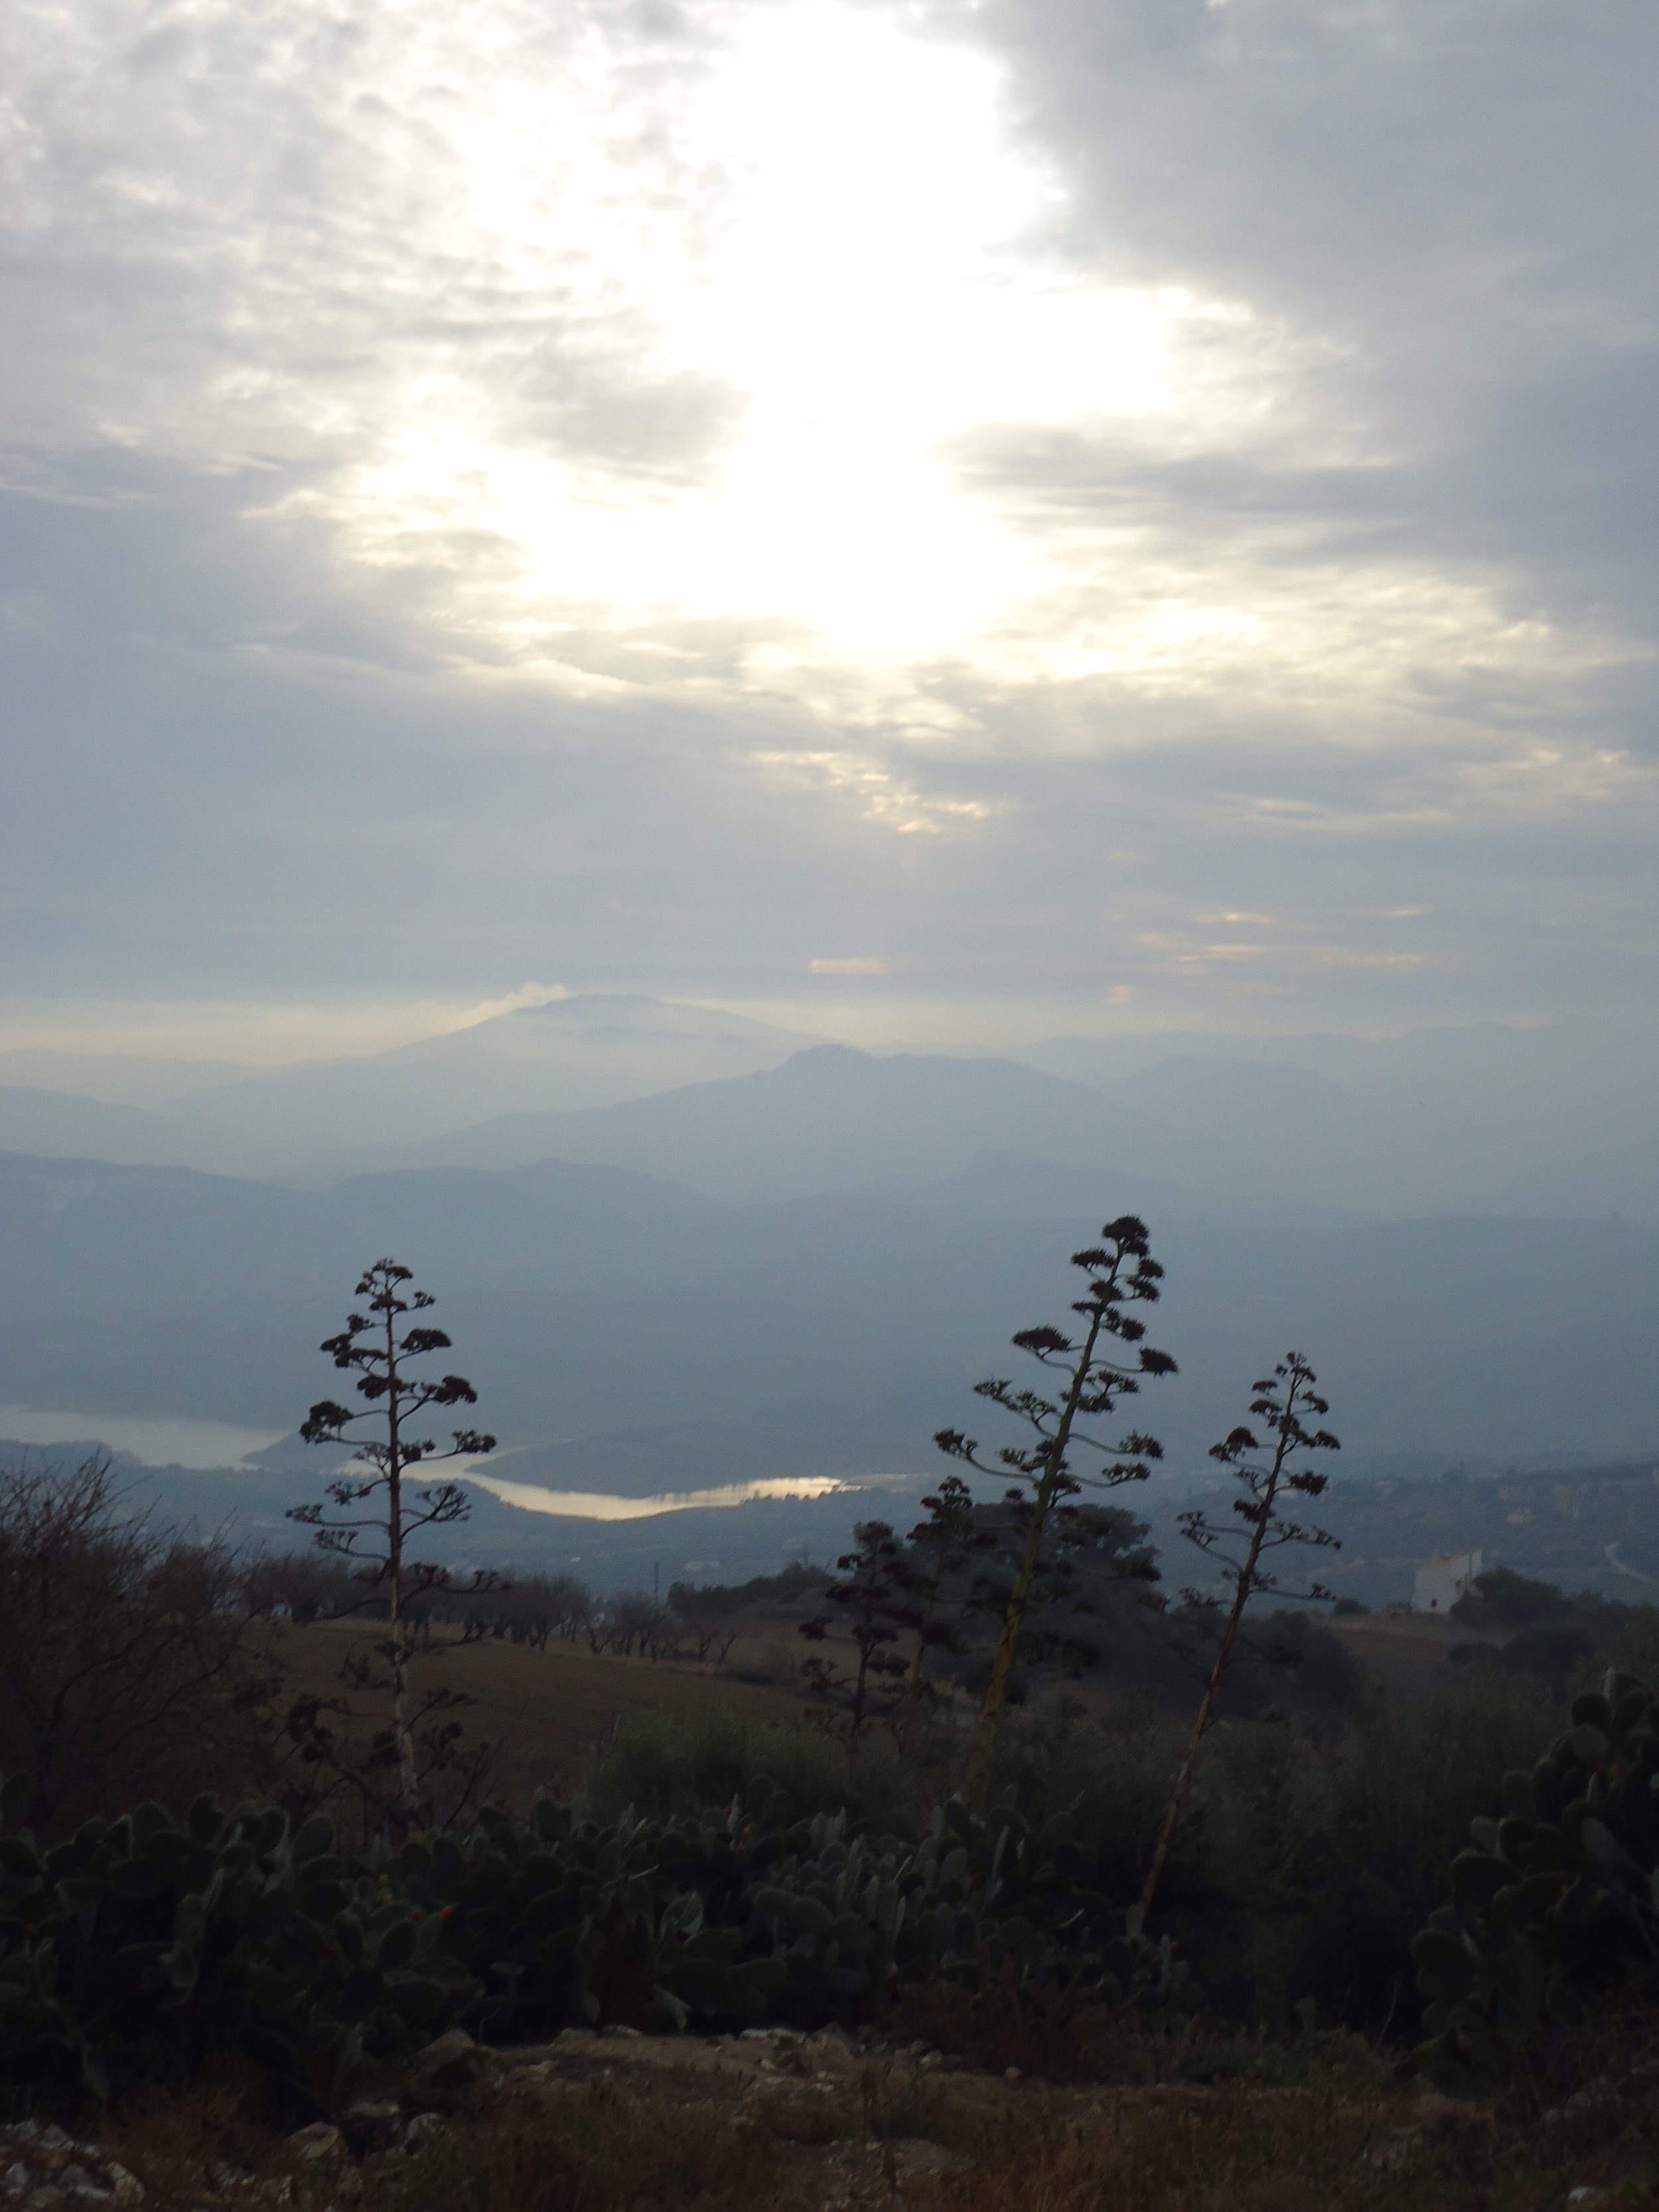 Early evening and looking towards Lake Vinuela....